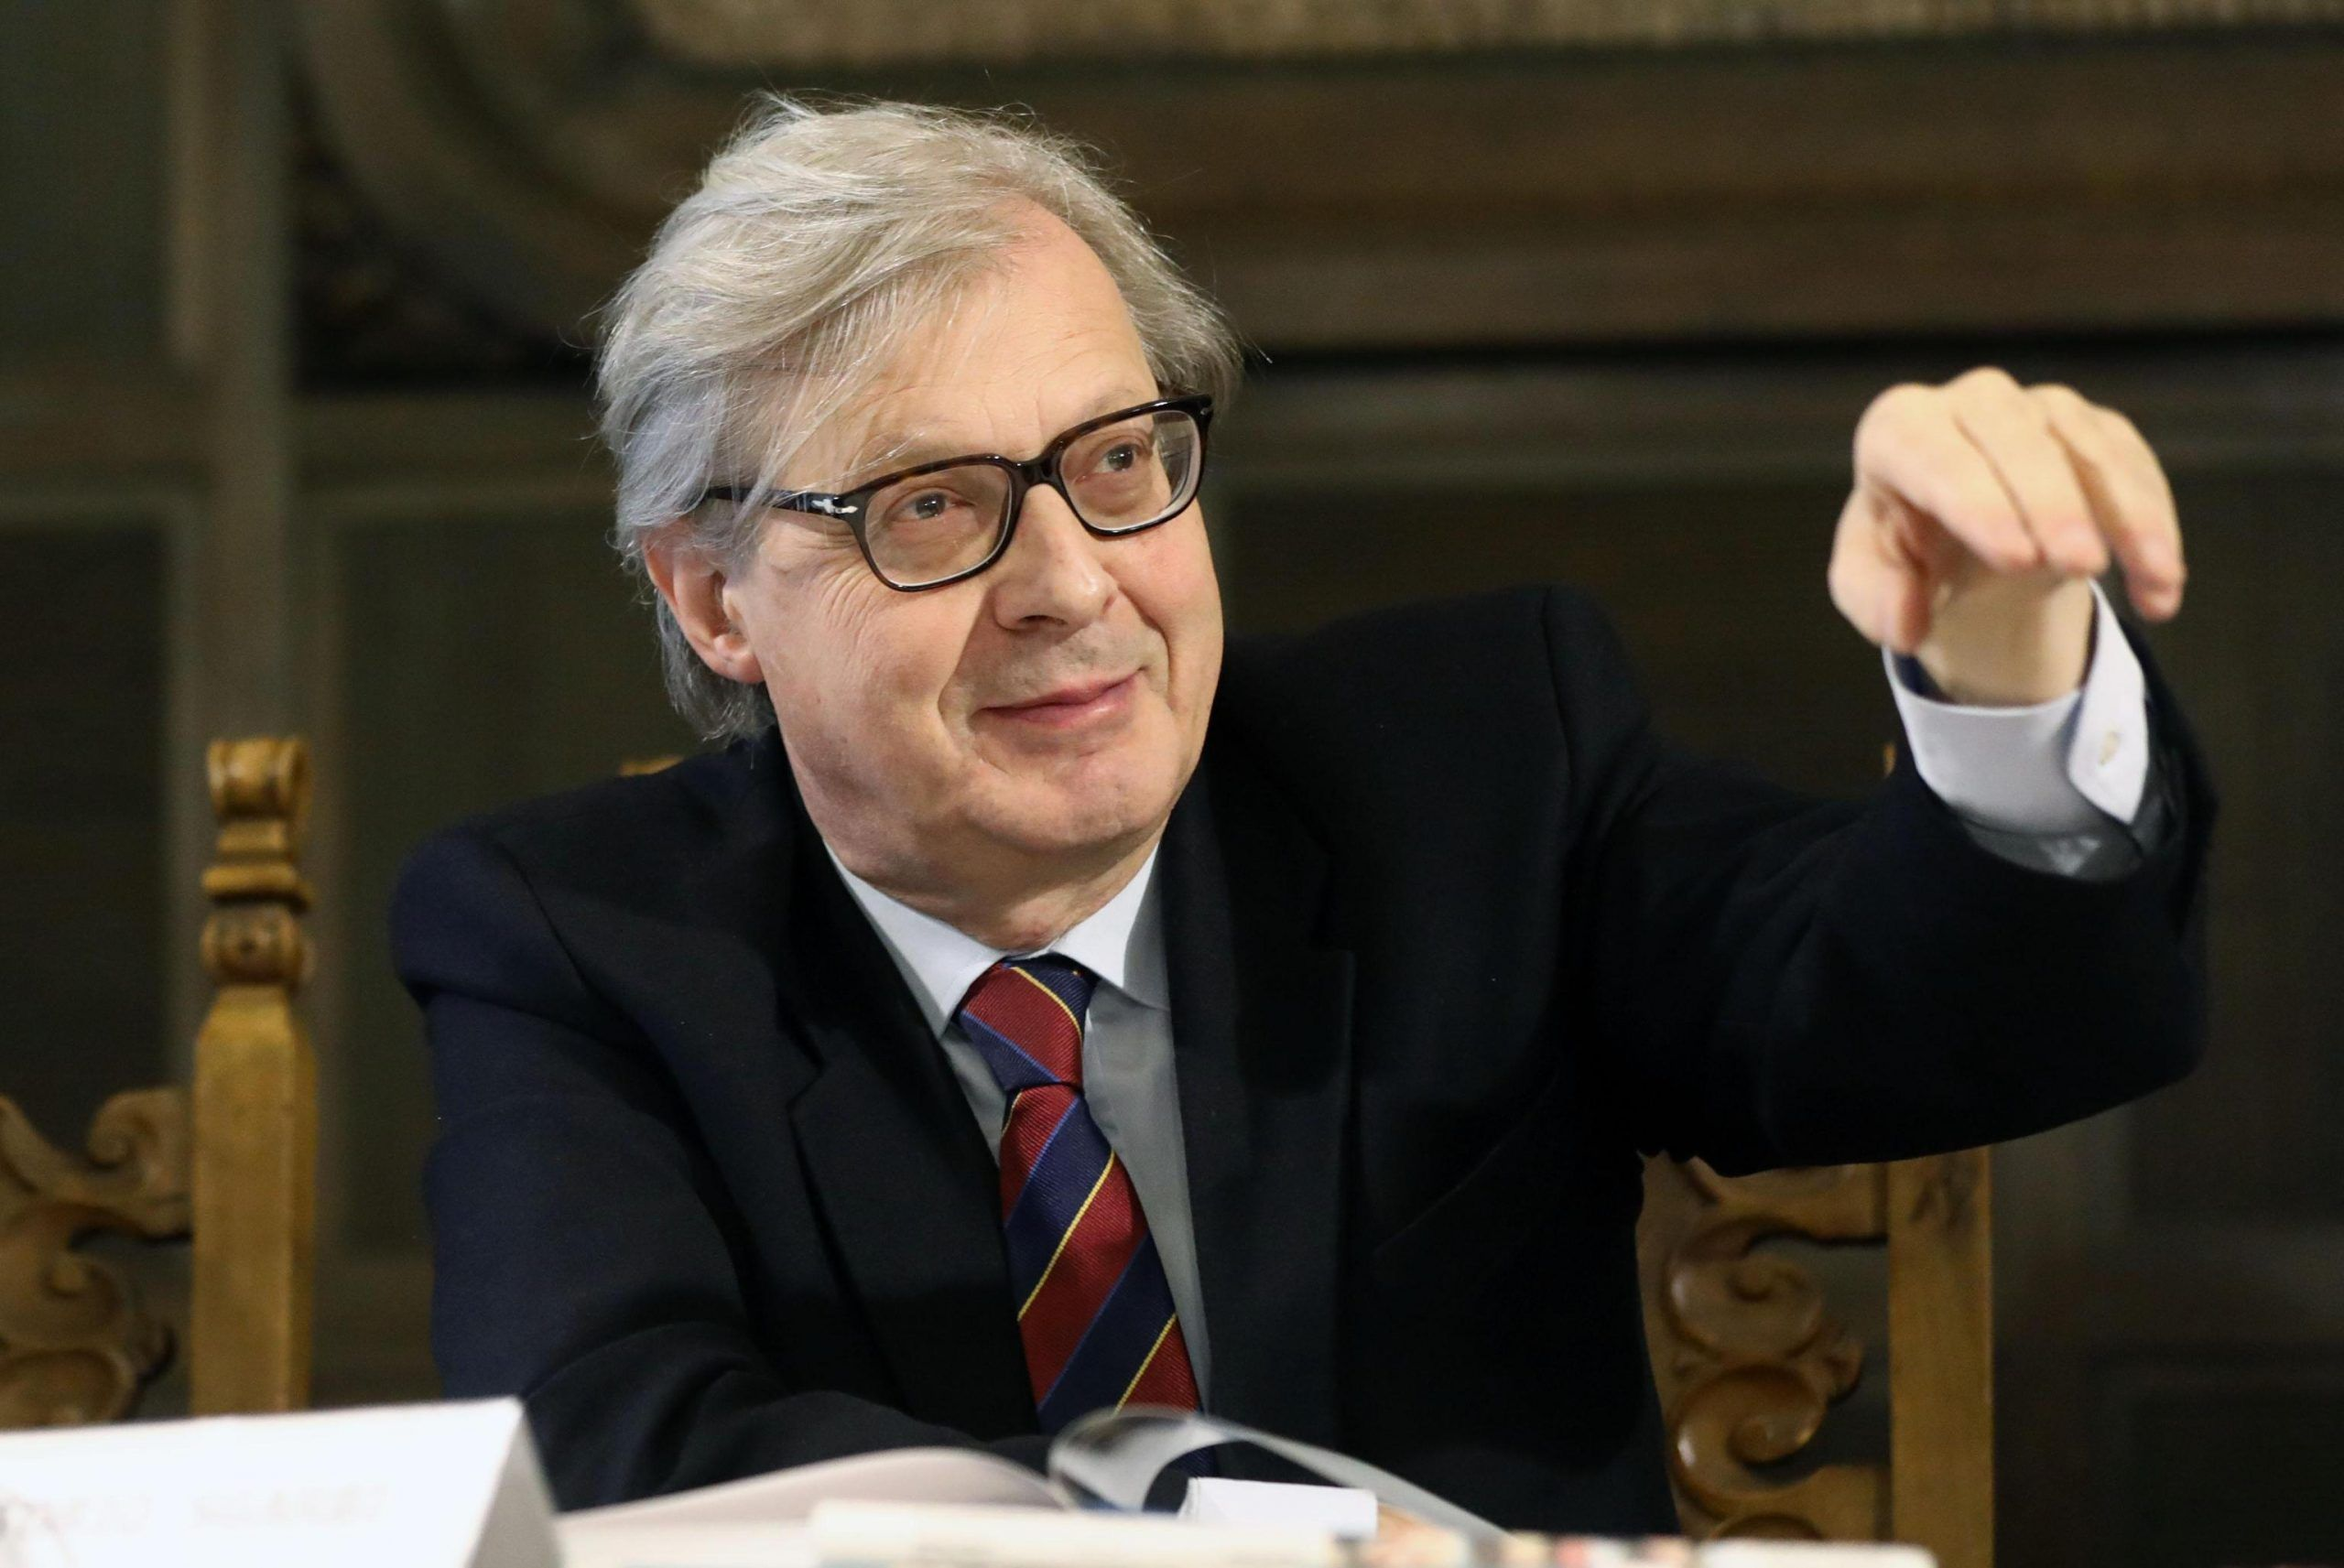 Vittorio Sgarbi cade dal materassino e finisce in piscina, il video è virale